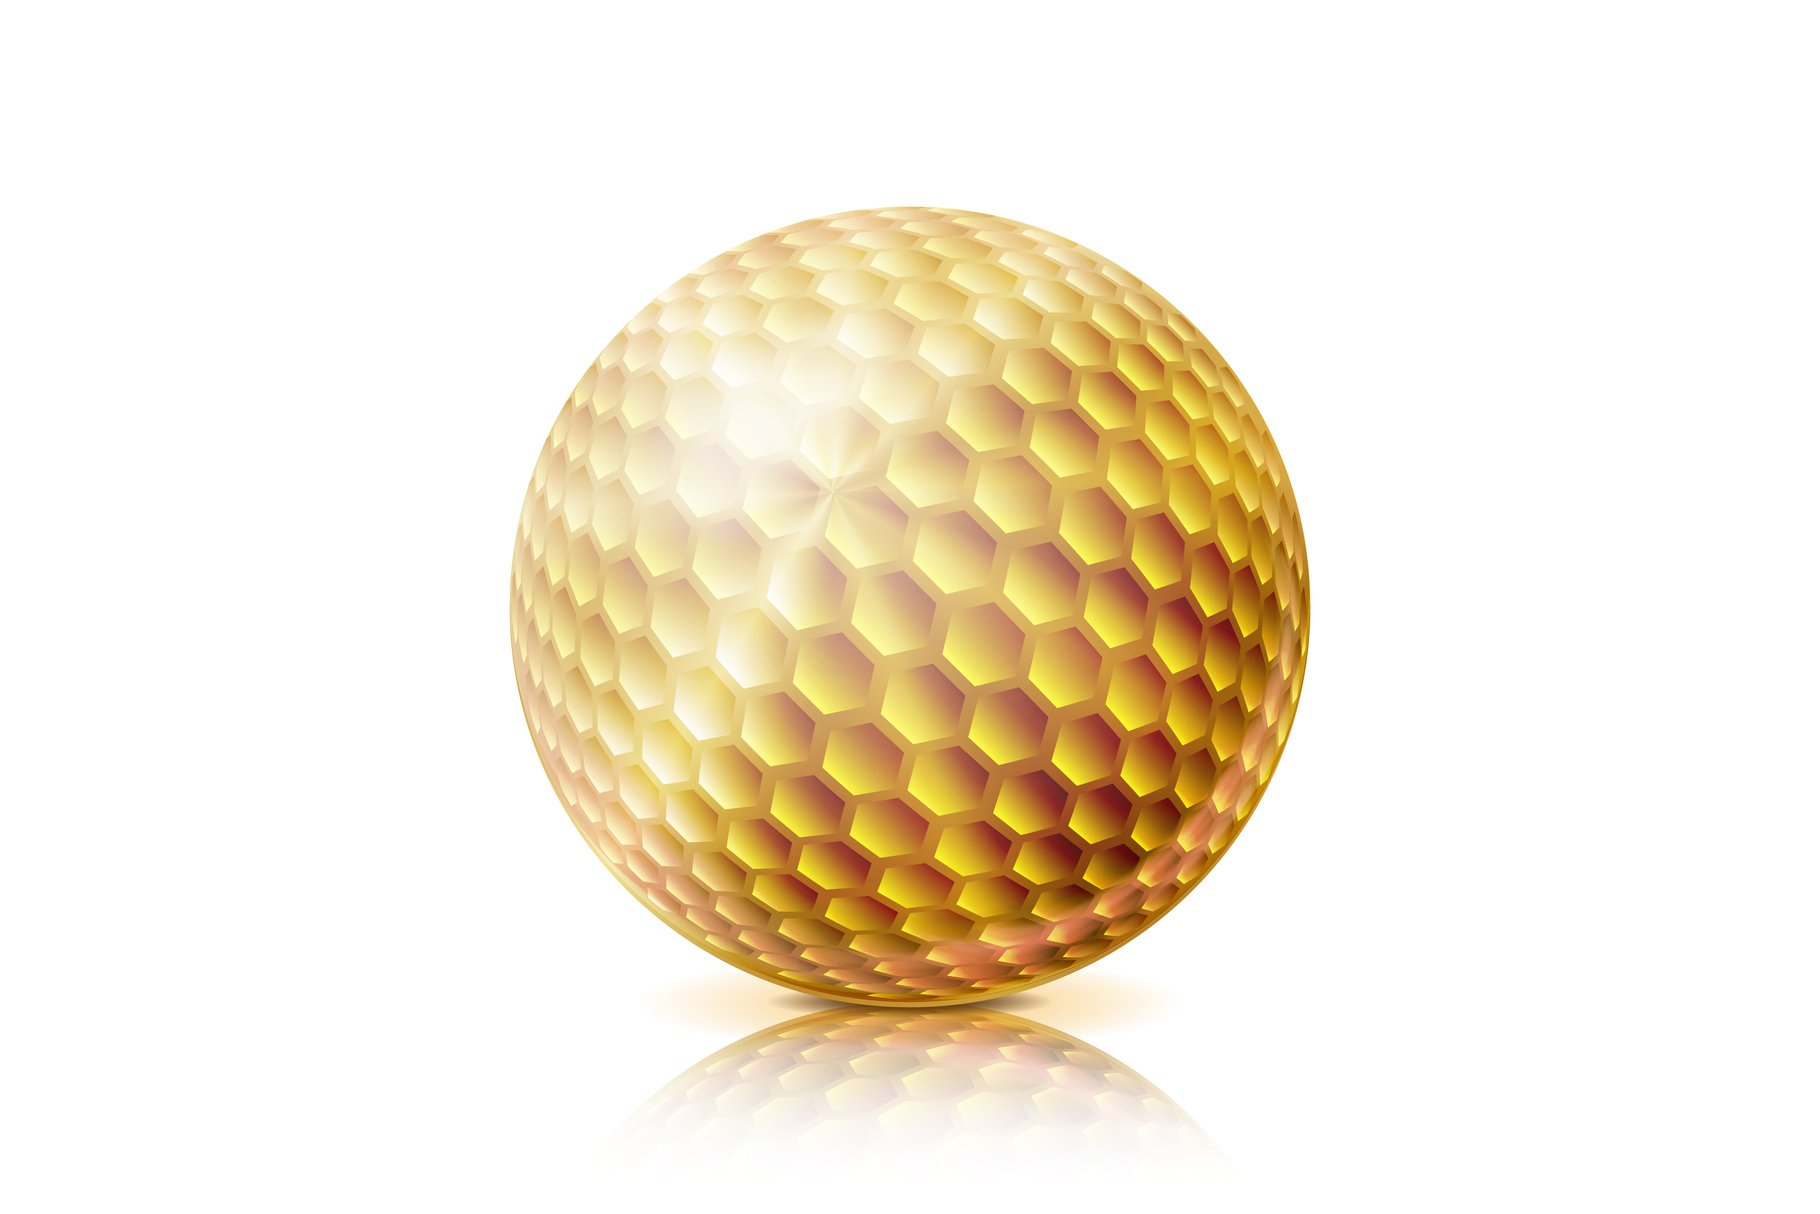 Gold Golf Ball. 3D Realistic Vector Illustration. Isolated example image 1